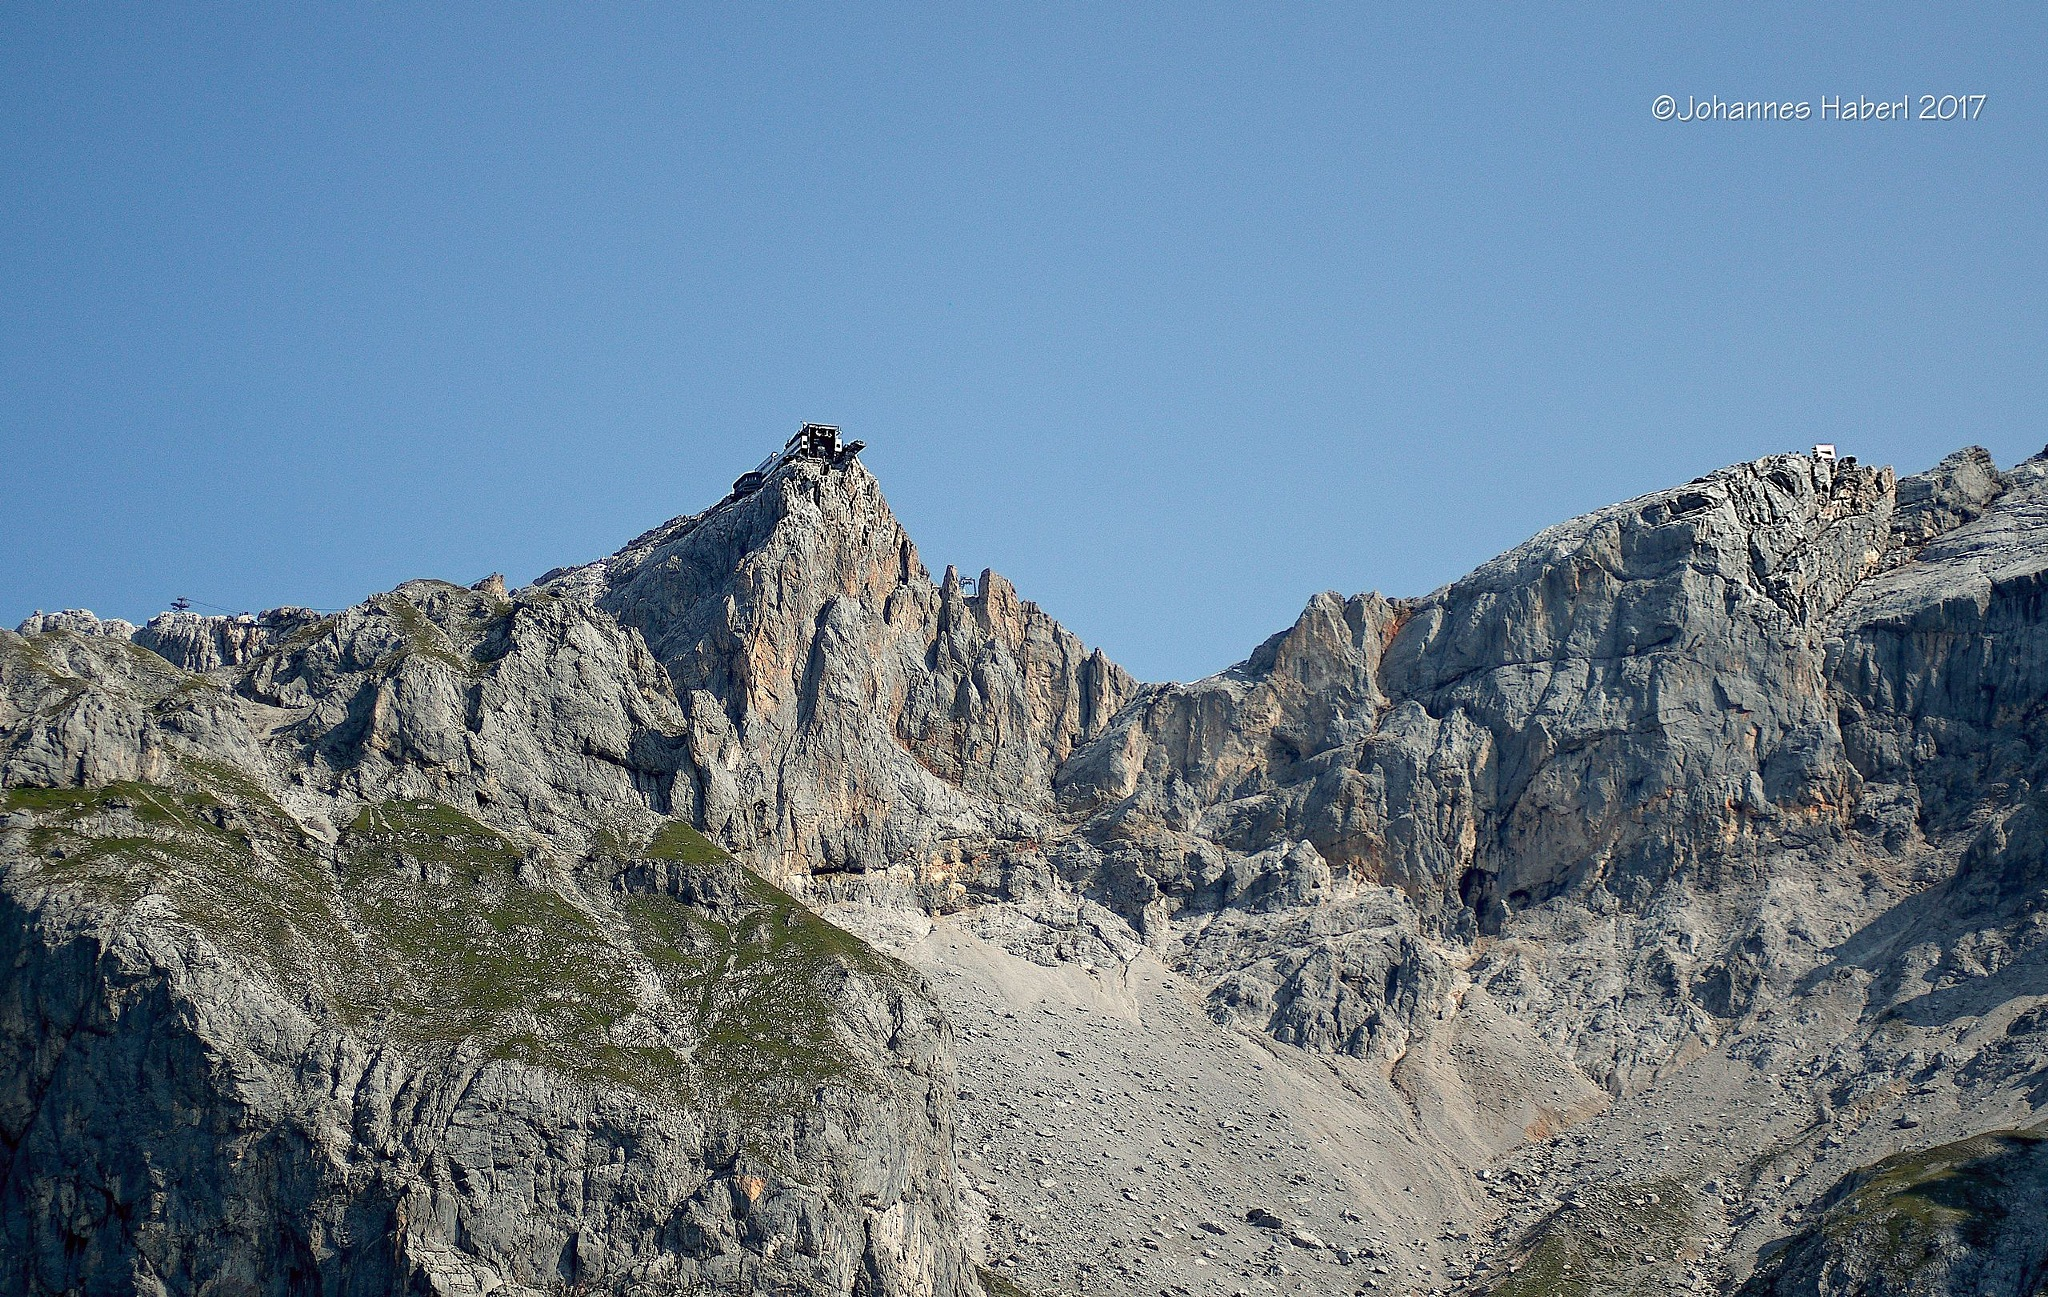 view to the top station of Dachstein cable railway / detail by Johannes Haberl